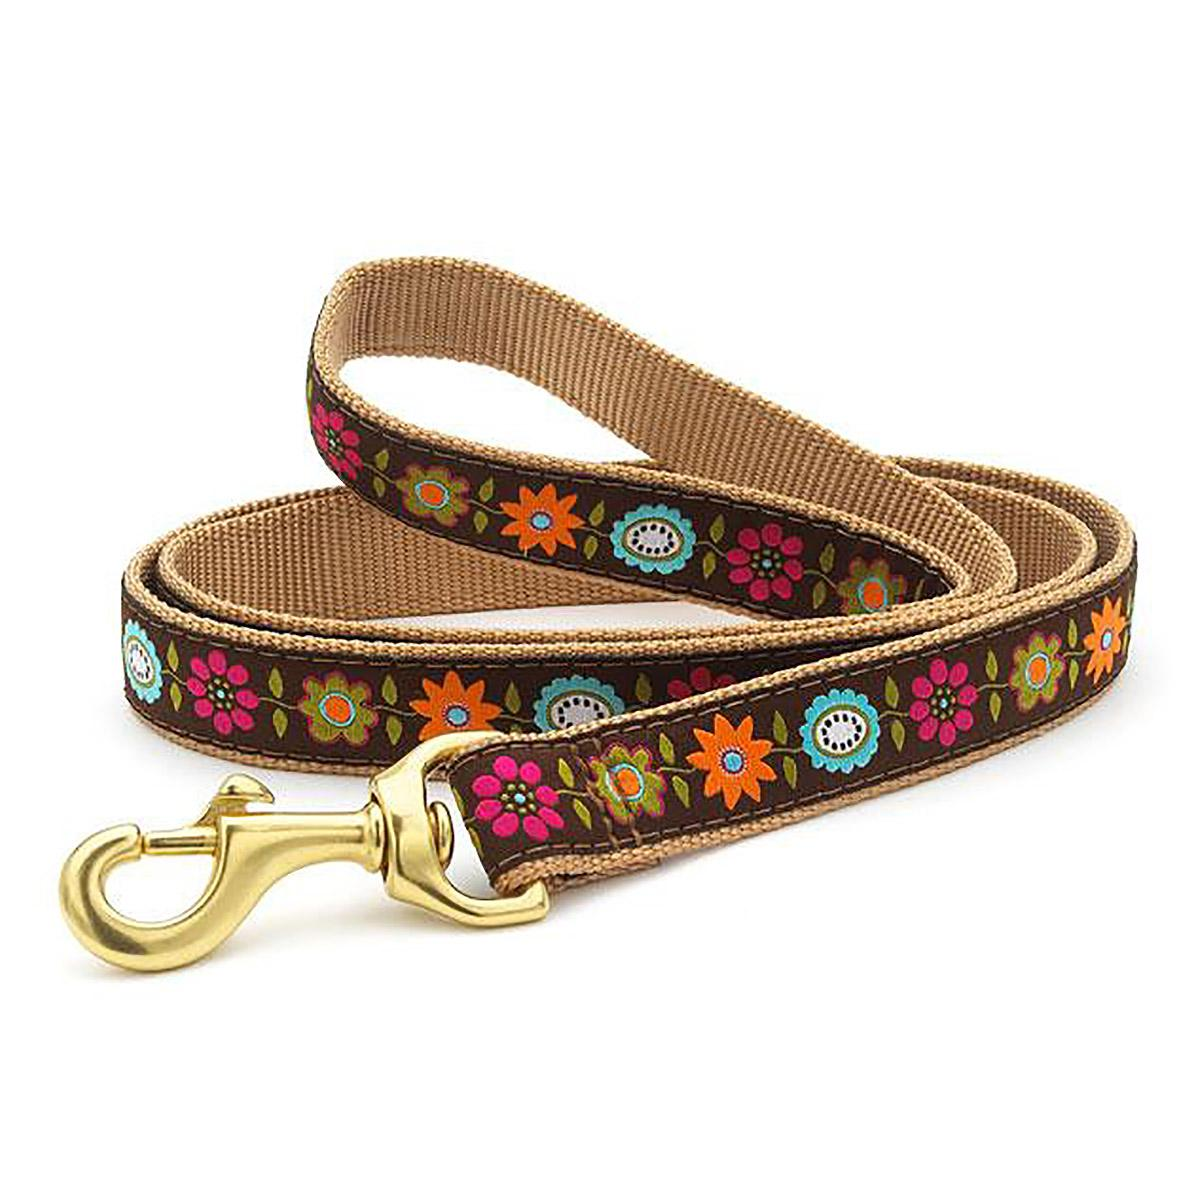 Bella Floral Dog Leash by Up Country